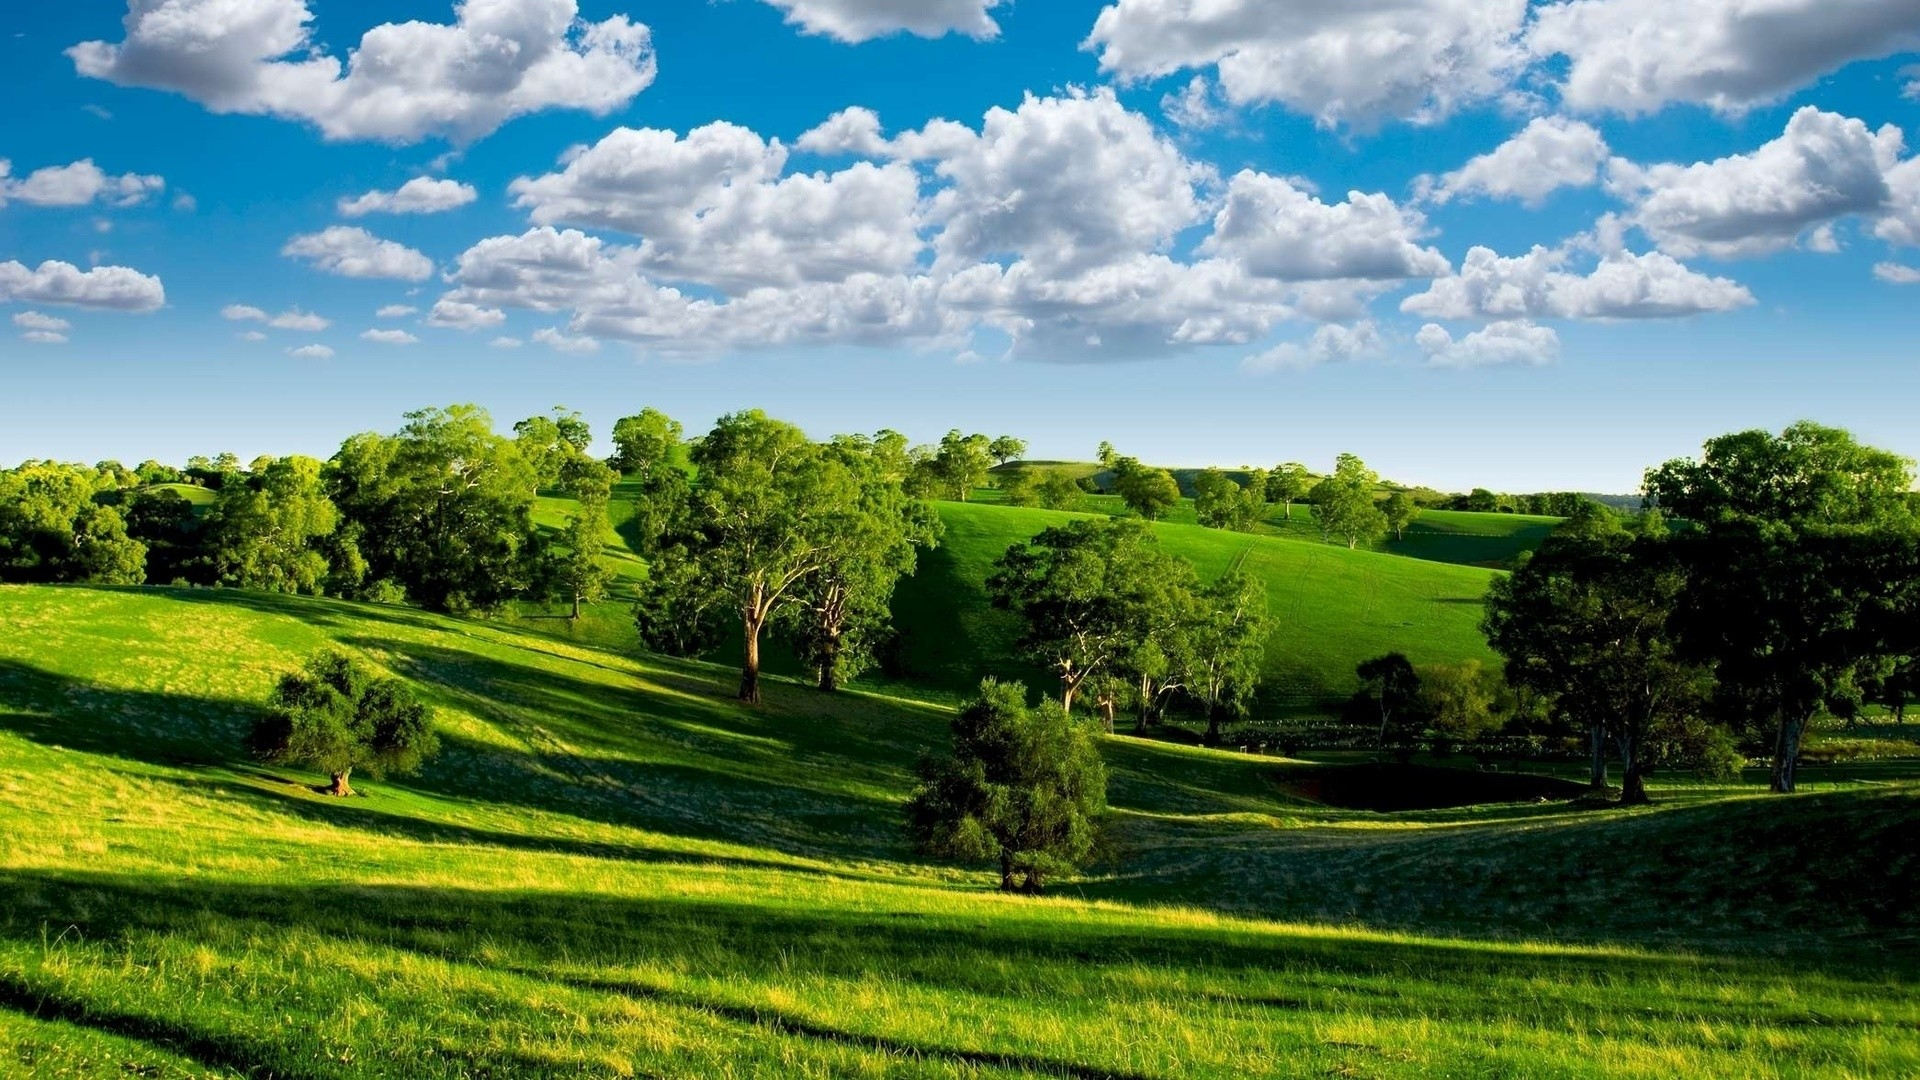 1920x1080 Preview wallpaper summer, hills, trees, green, meadows, clouds, sky,